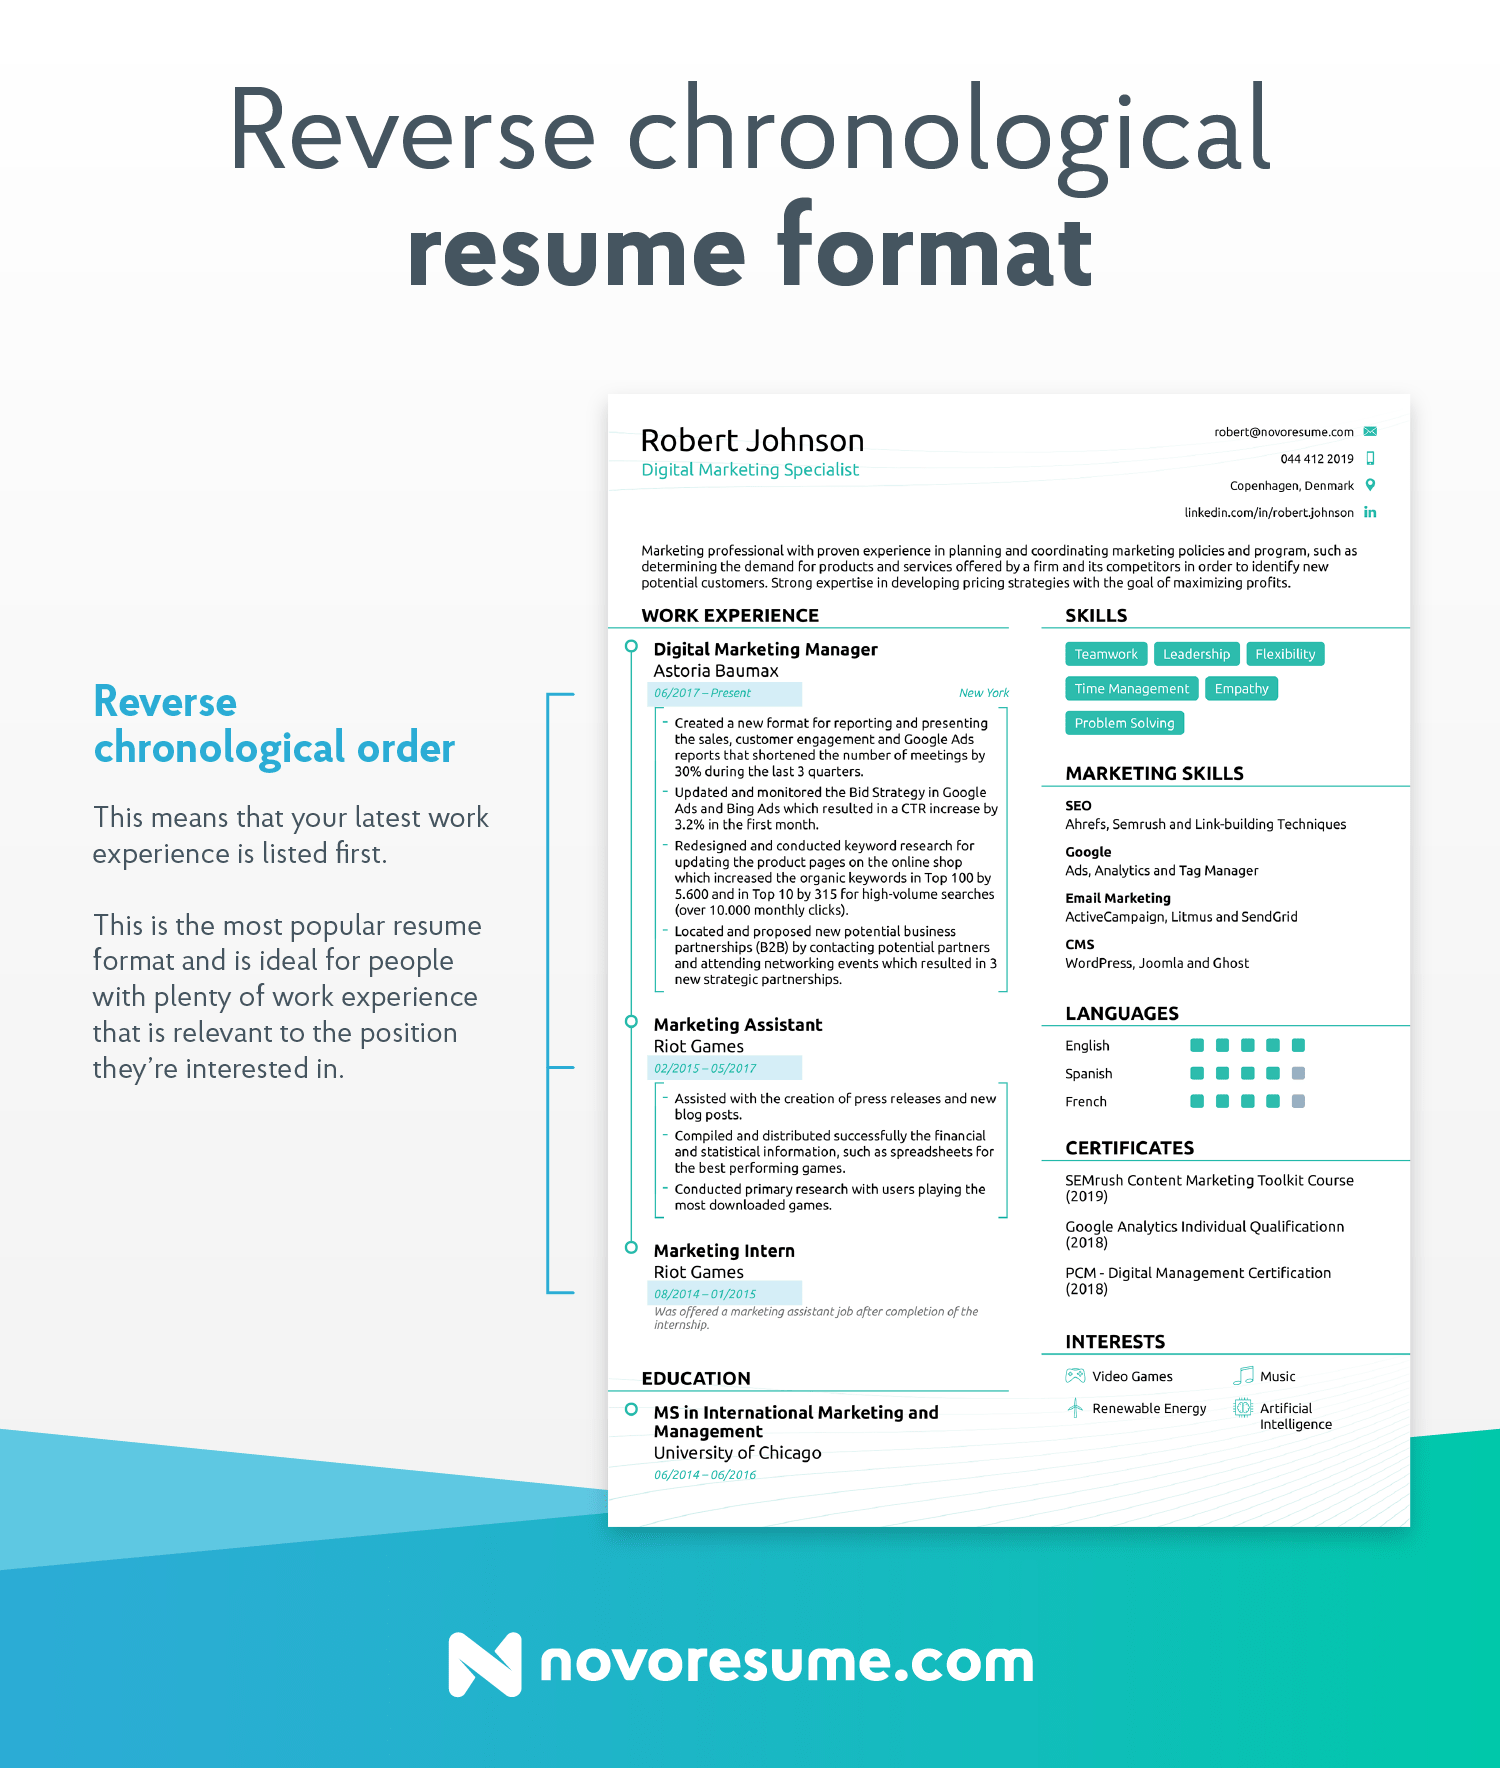 Operations Manager Resume Examples Guide For 2020